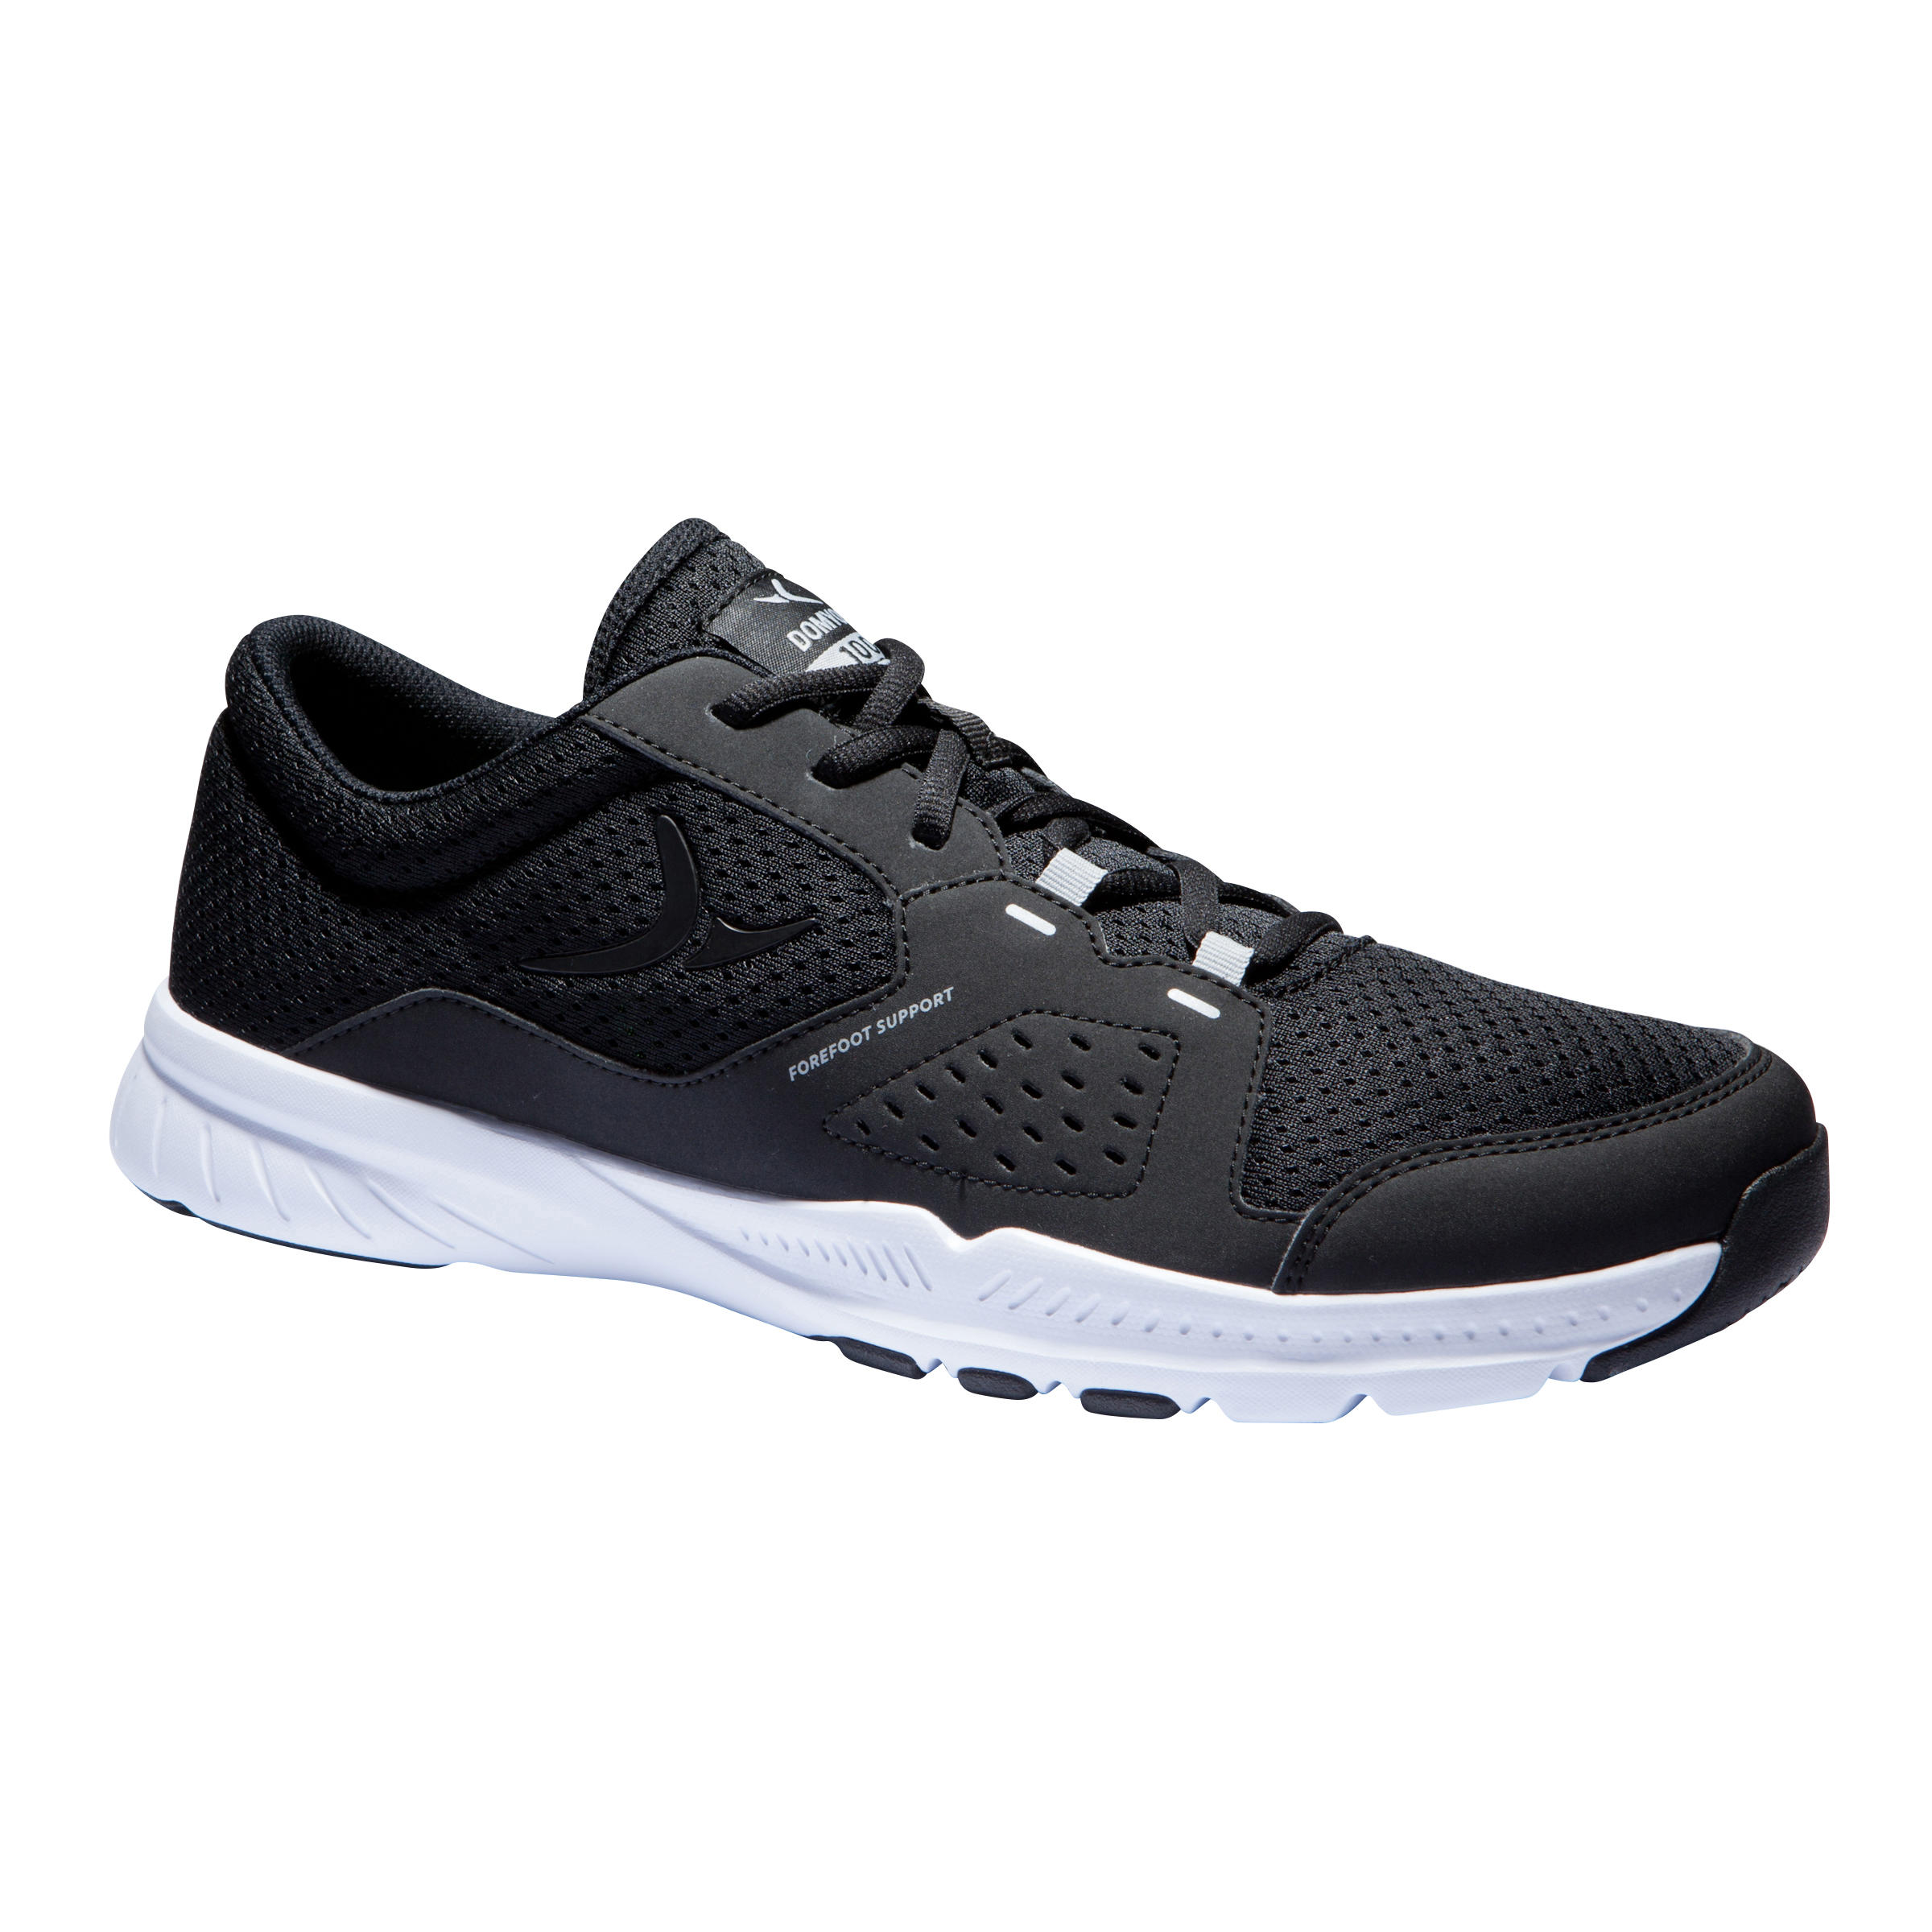 Buy Gym Shoes for Men and Women Online